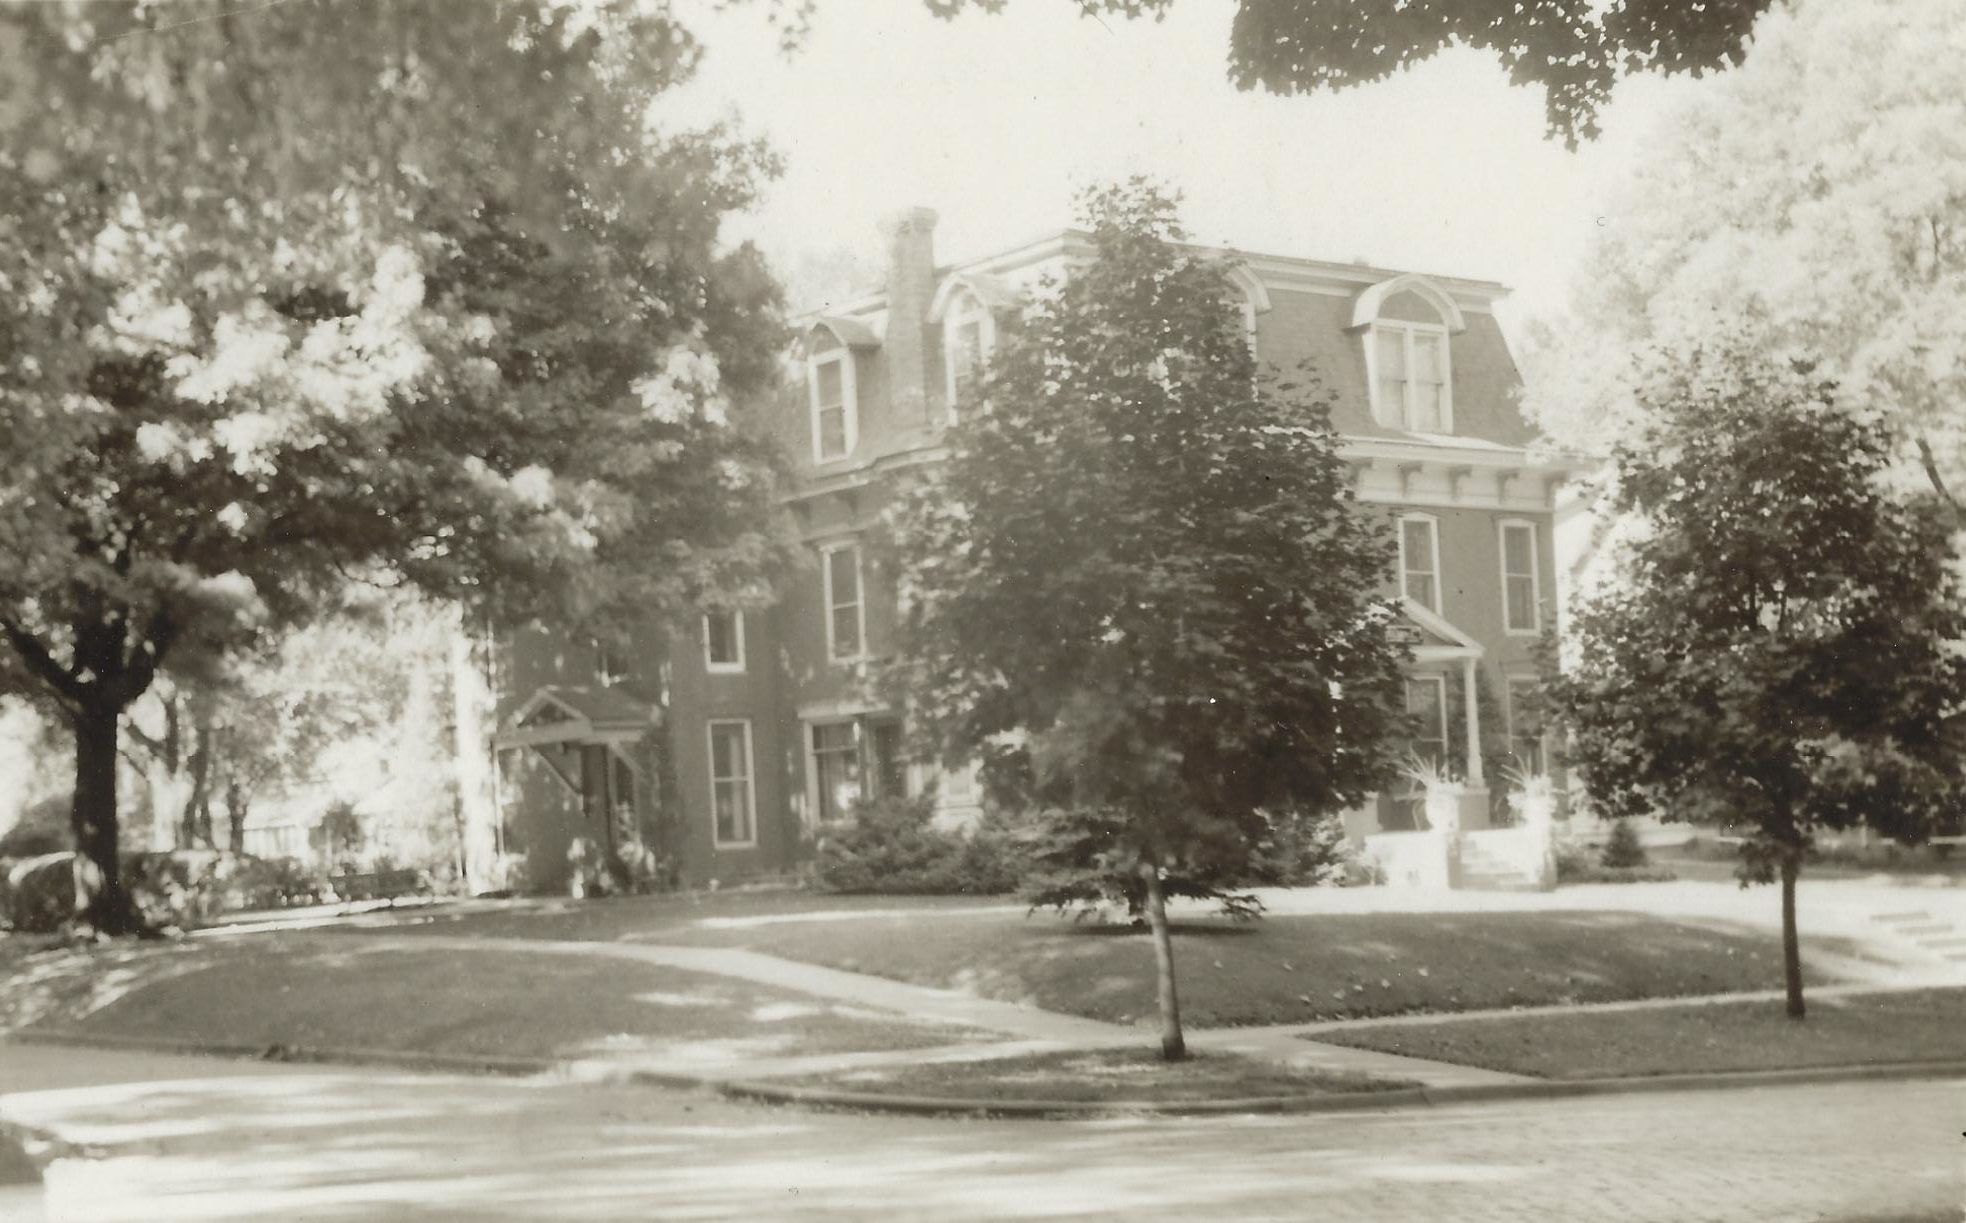 Photo of C. W. Neff Funeral Home